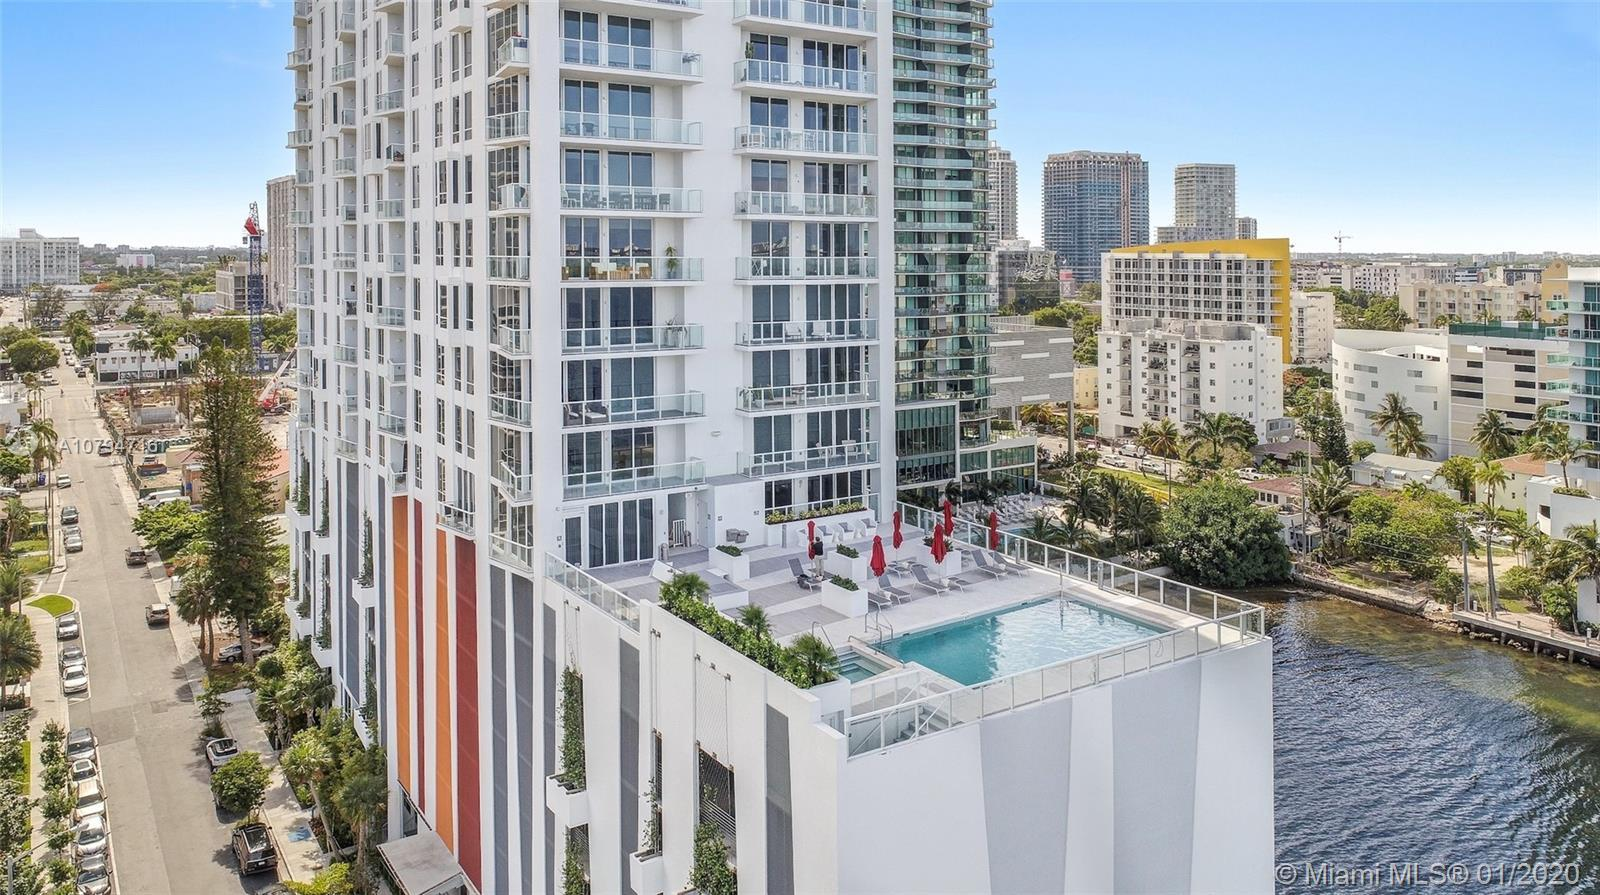 GORGEOUS 1BED/1BATH UNIT WITH HIGH END LUXURY FINISHES SUCH AS BOSH APPLIANCES, ROLLER SHADES, MARB